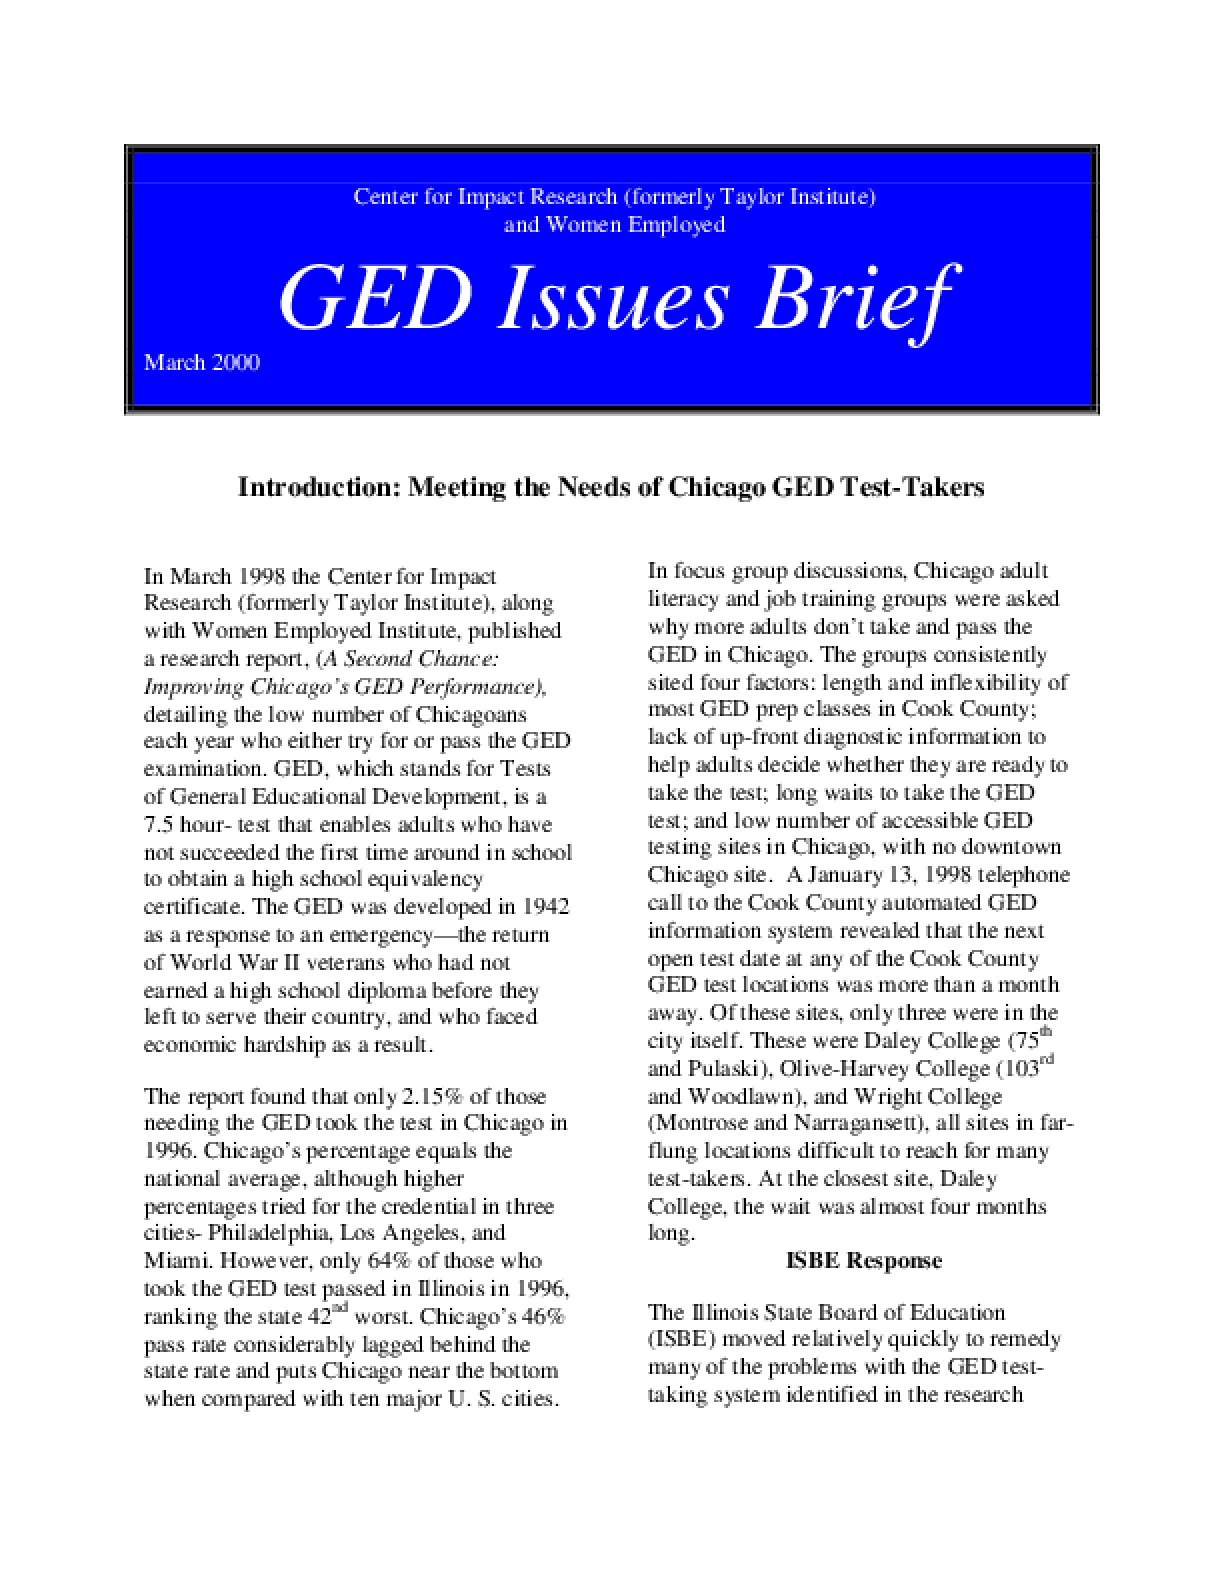 GED Issues Brief #1